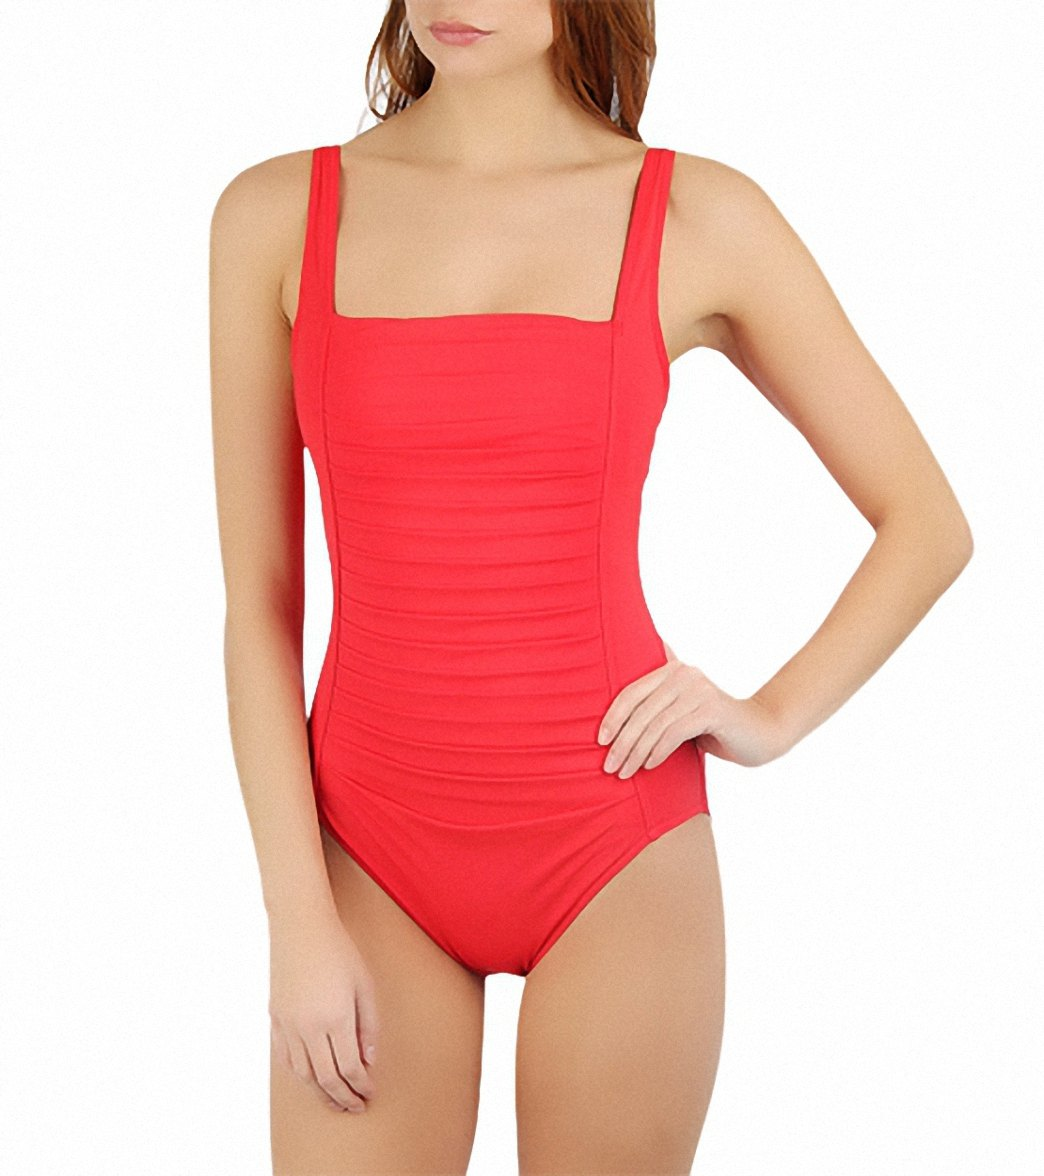 d872a699e3 ... Calvin Klein Womens Pleat Front One Piece Swimsuit. Play Video. Play  Video